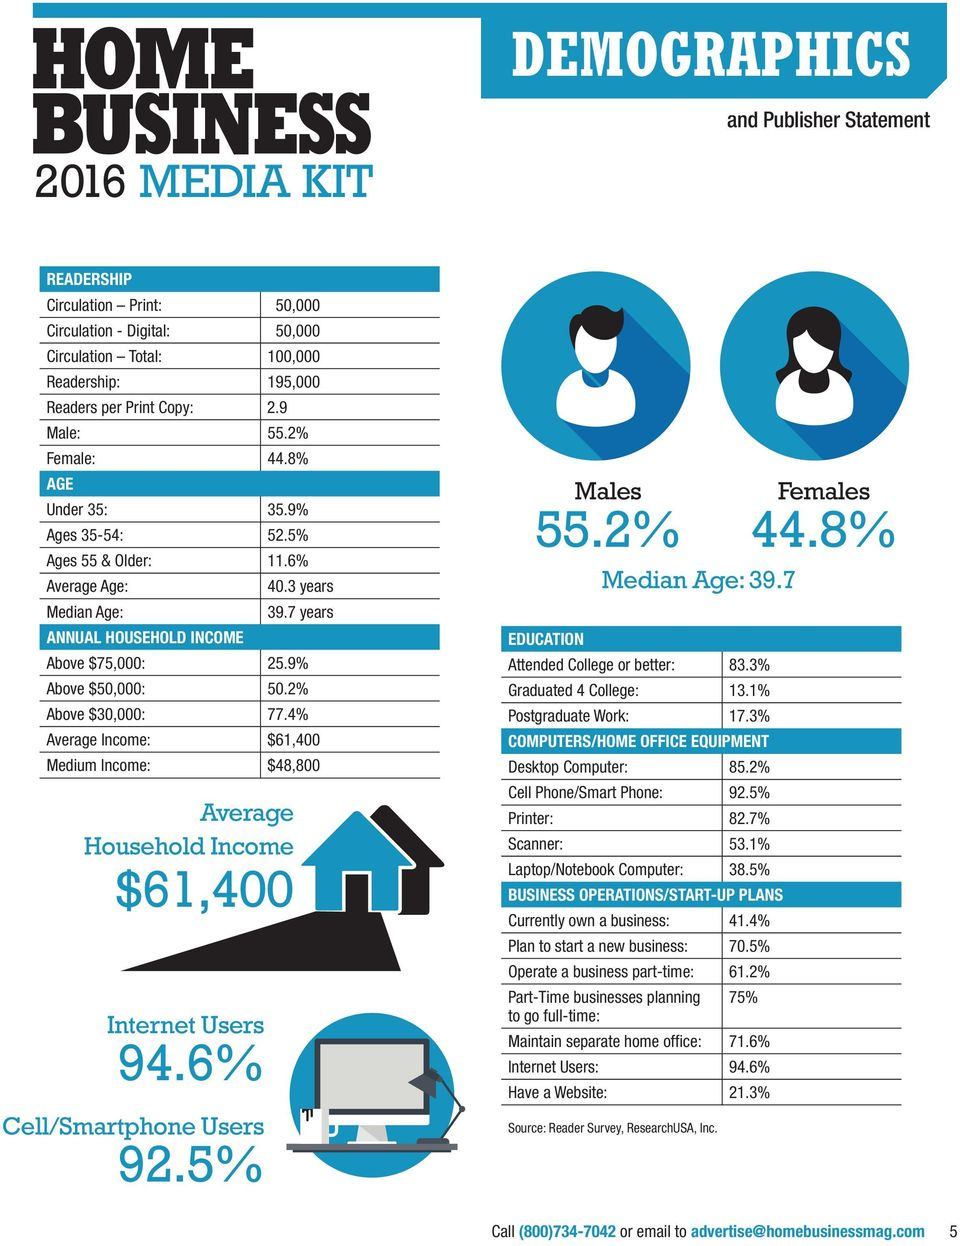 2% Above $30,000: 77.4% Average Income: $61,400 Medium Income: $48,800 Average Household Income $61,400 Internet Users 94.6% Cell/Smartphone Users 92.5% Males 55.2% Females Median Age: 39.